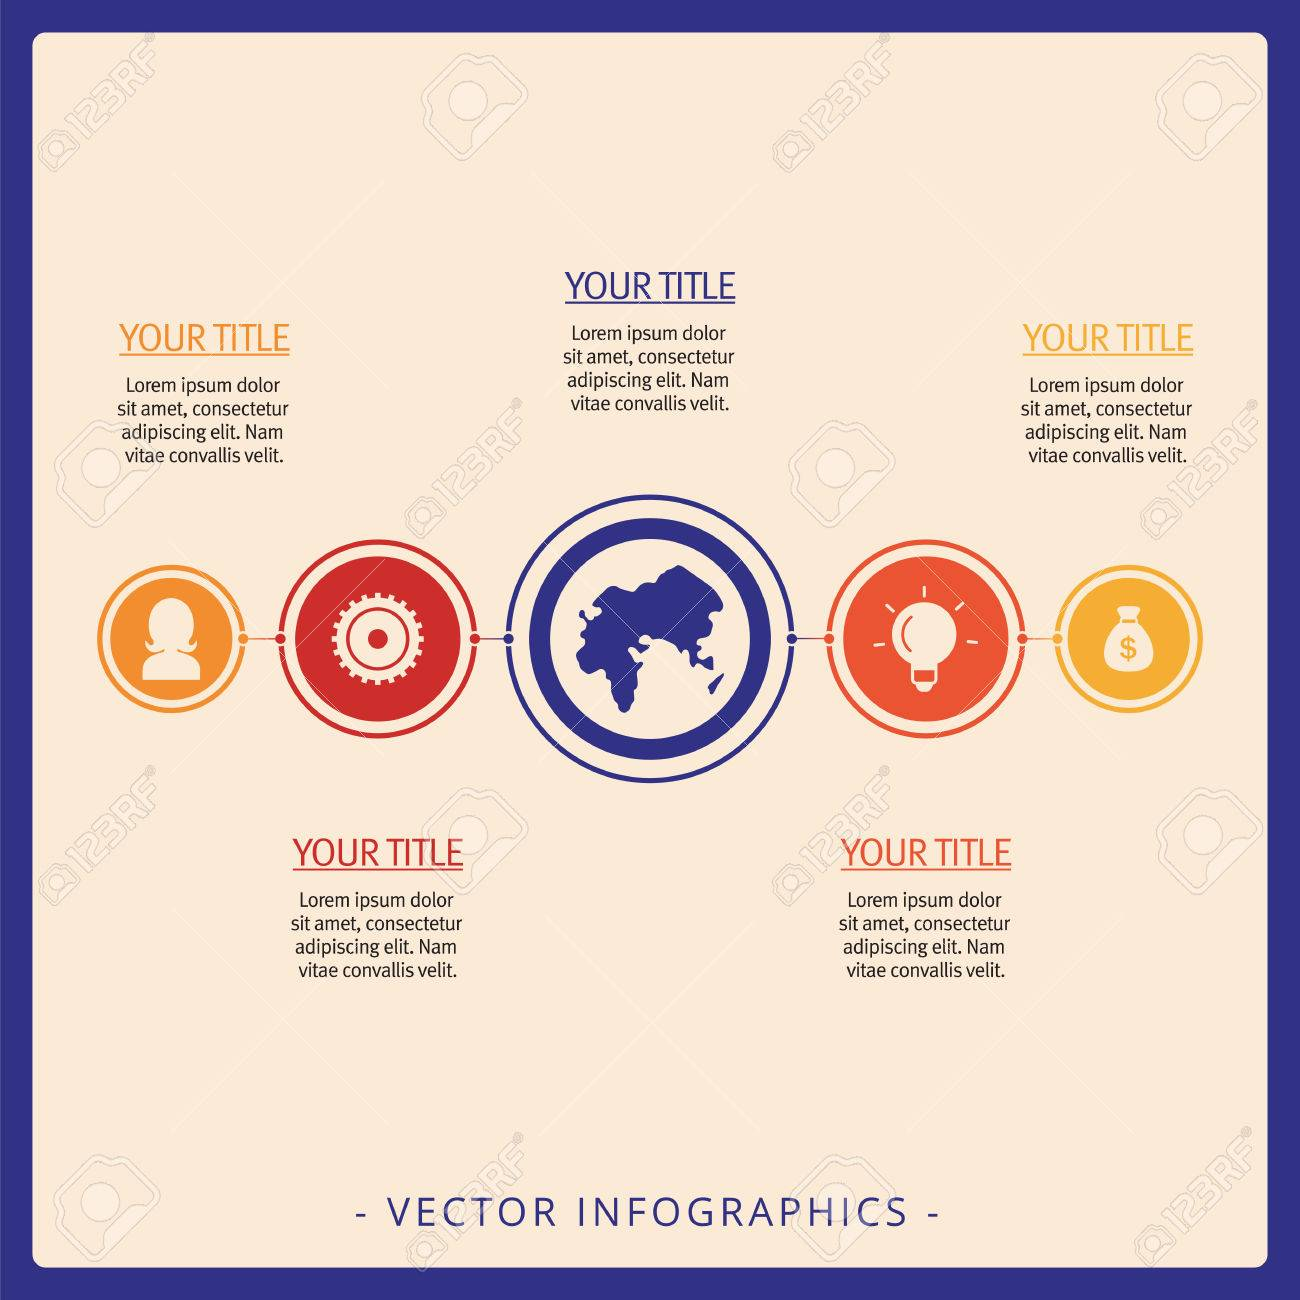 Editable Infographic Template Of Simple Process Chart With Icons Titles And Sample Text Multicolored